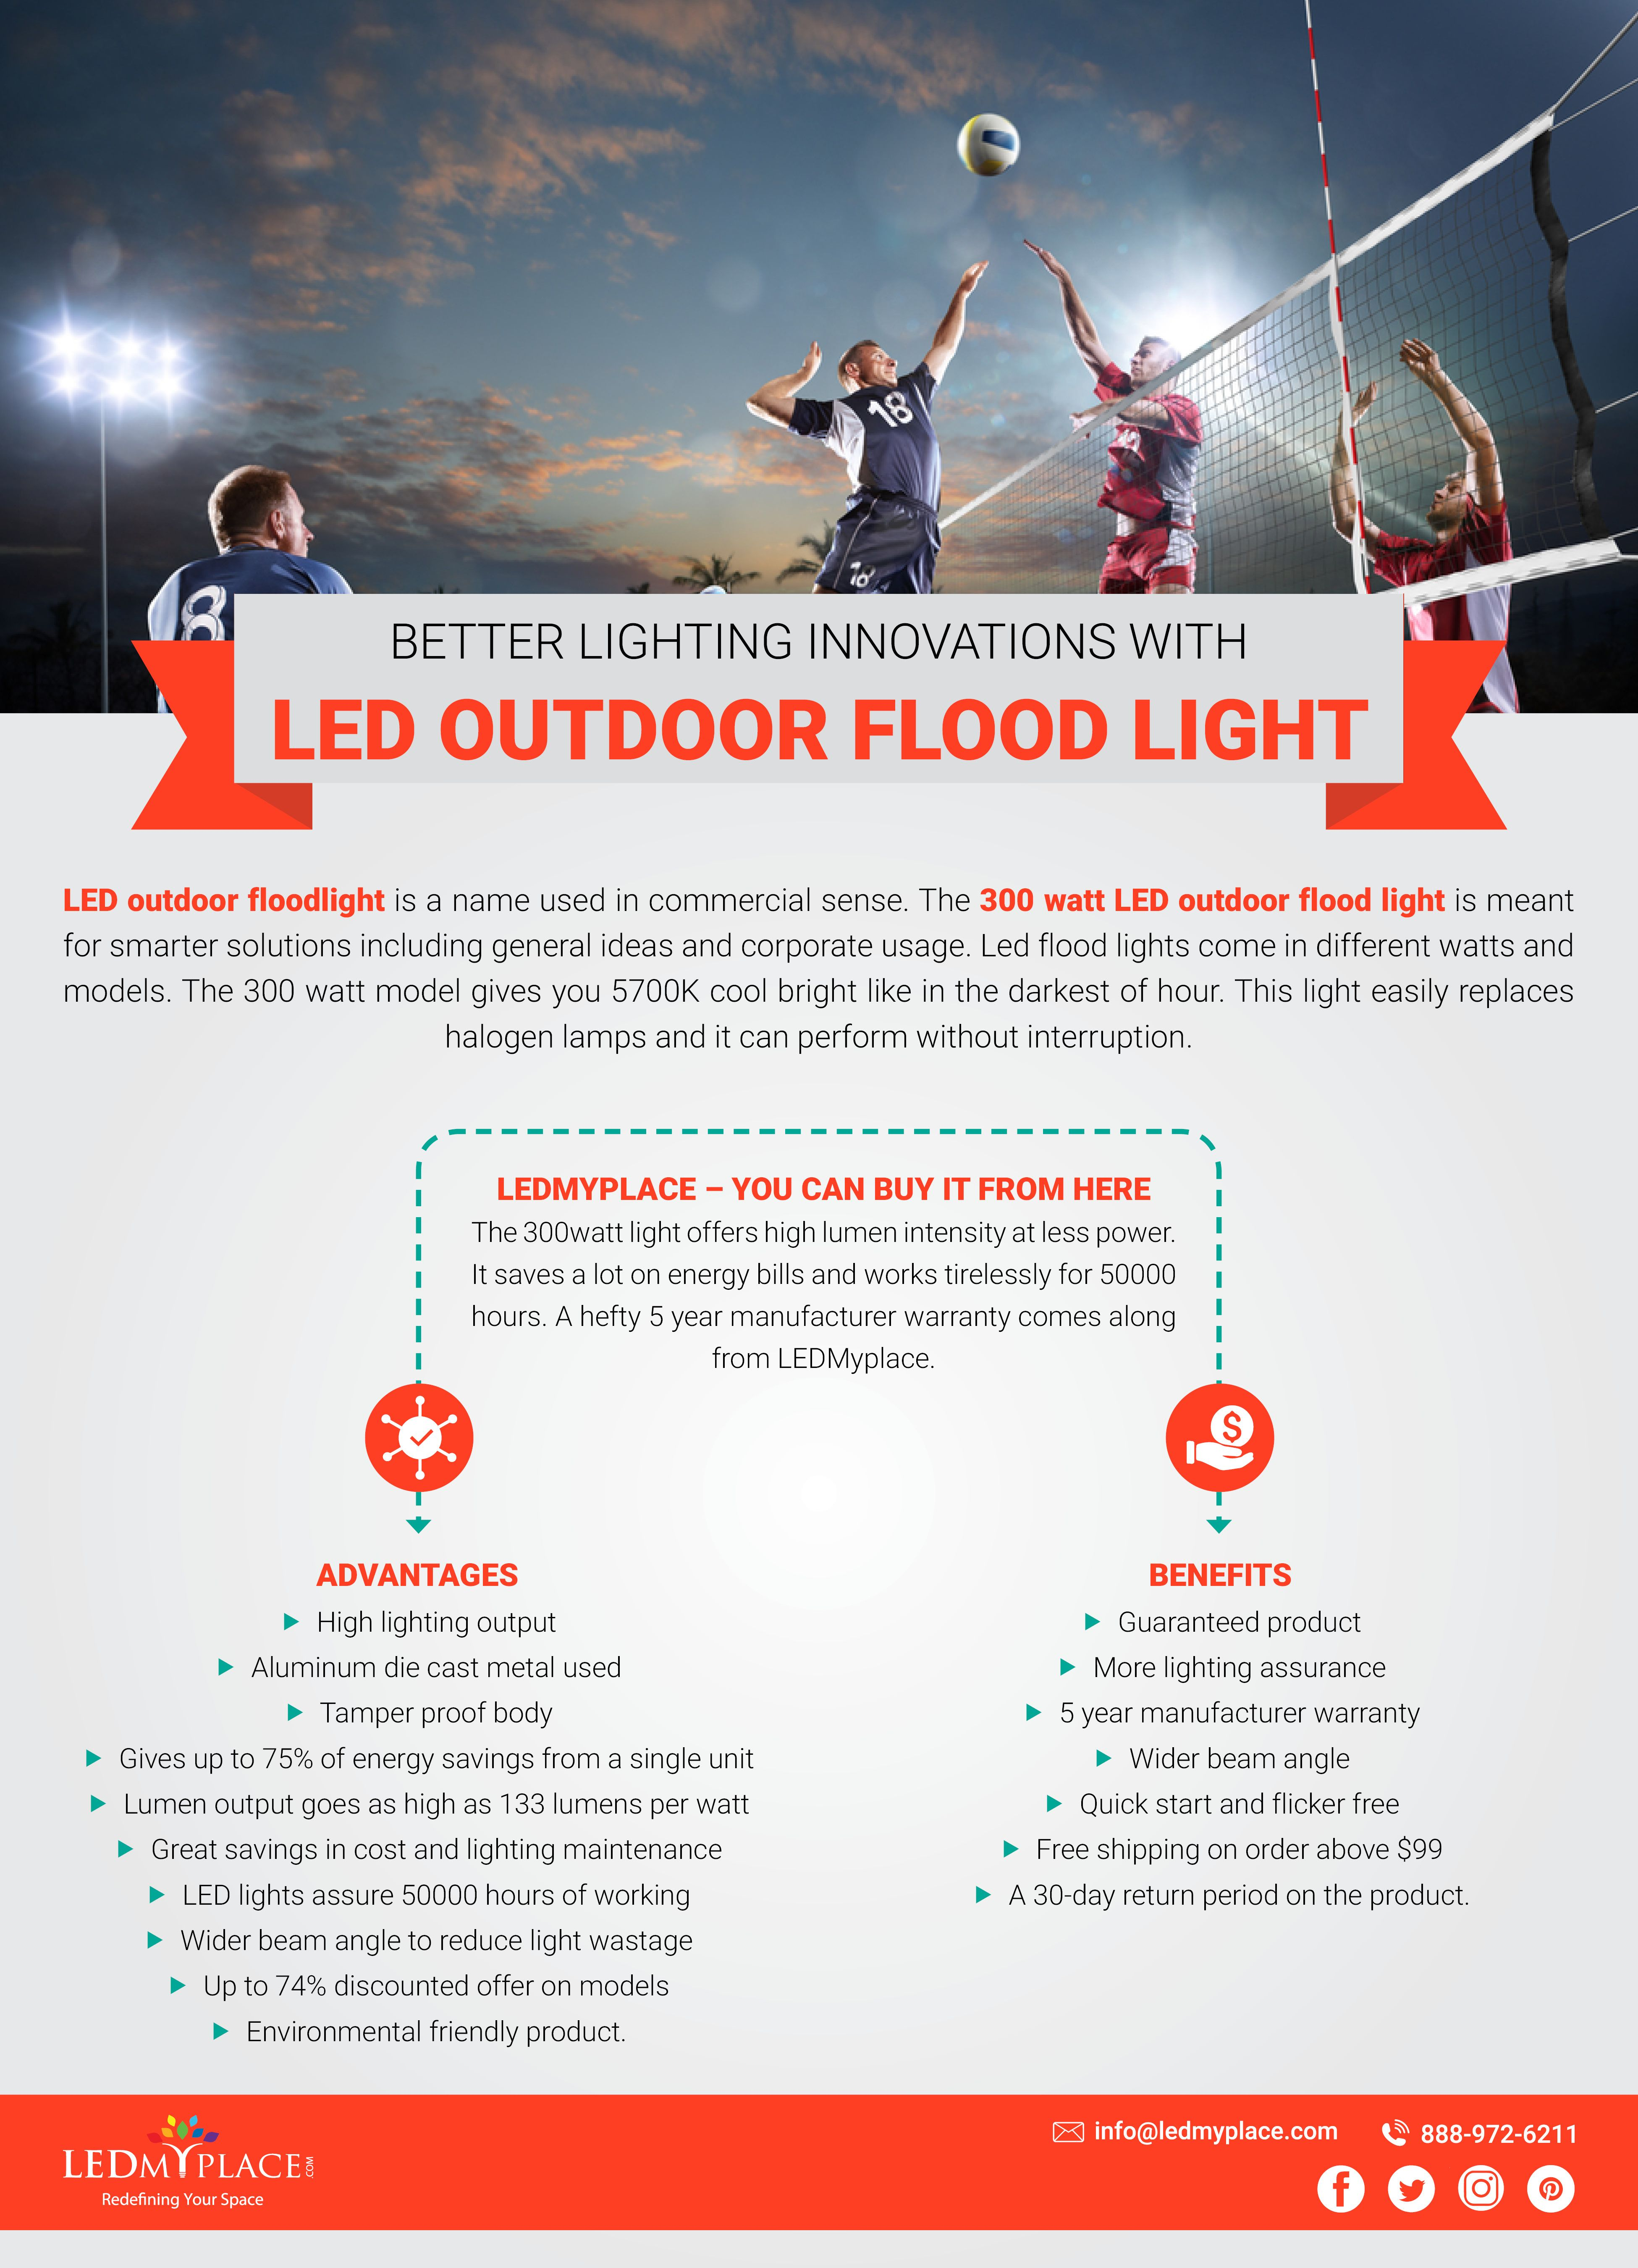 Better Lighting Innovations With LED Outdoor Flood Light